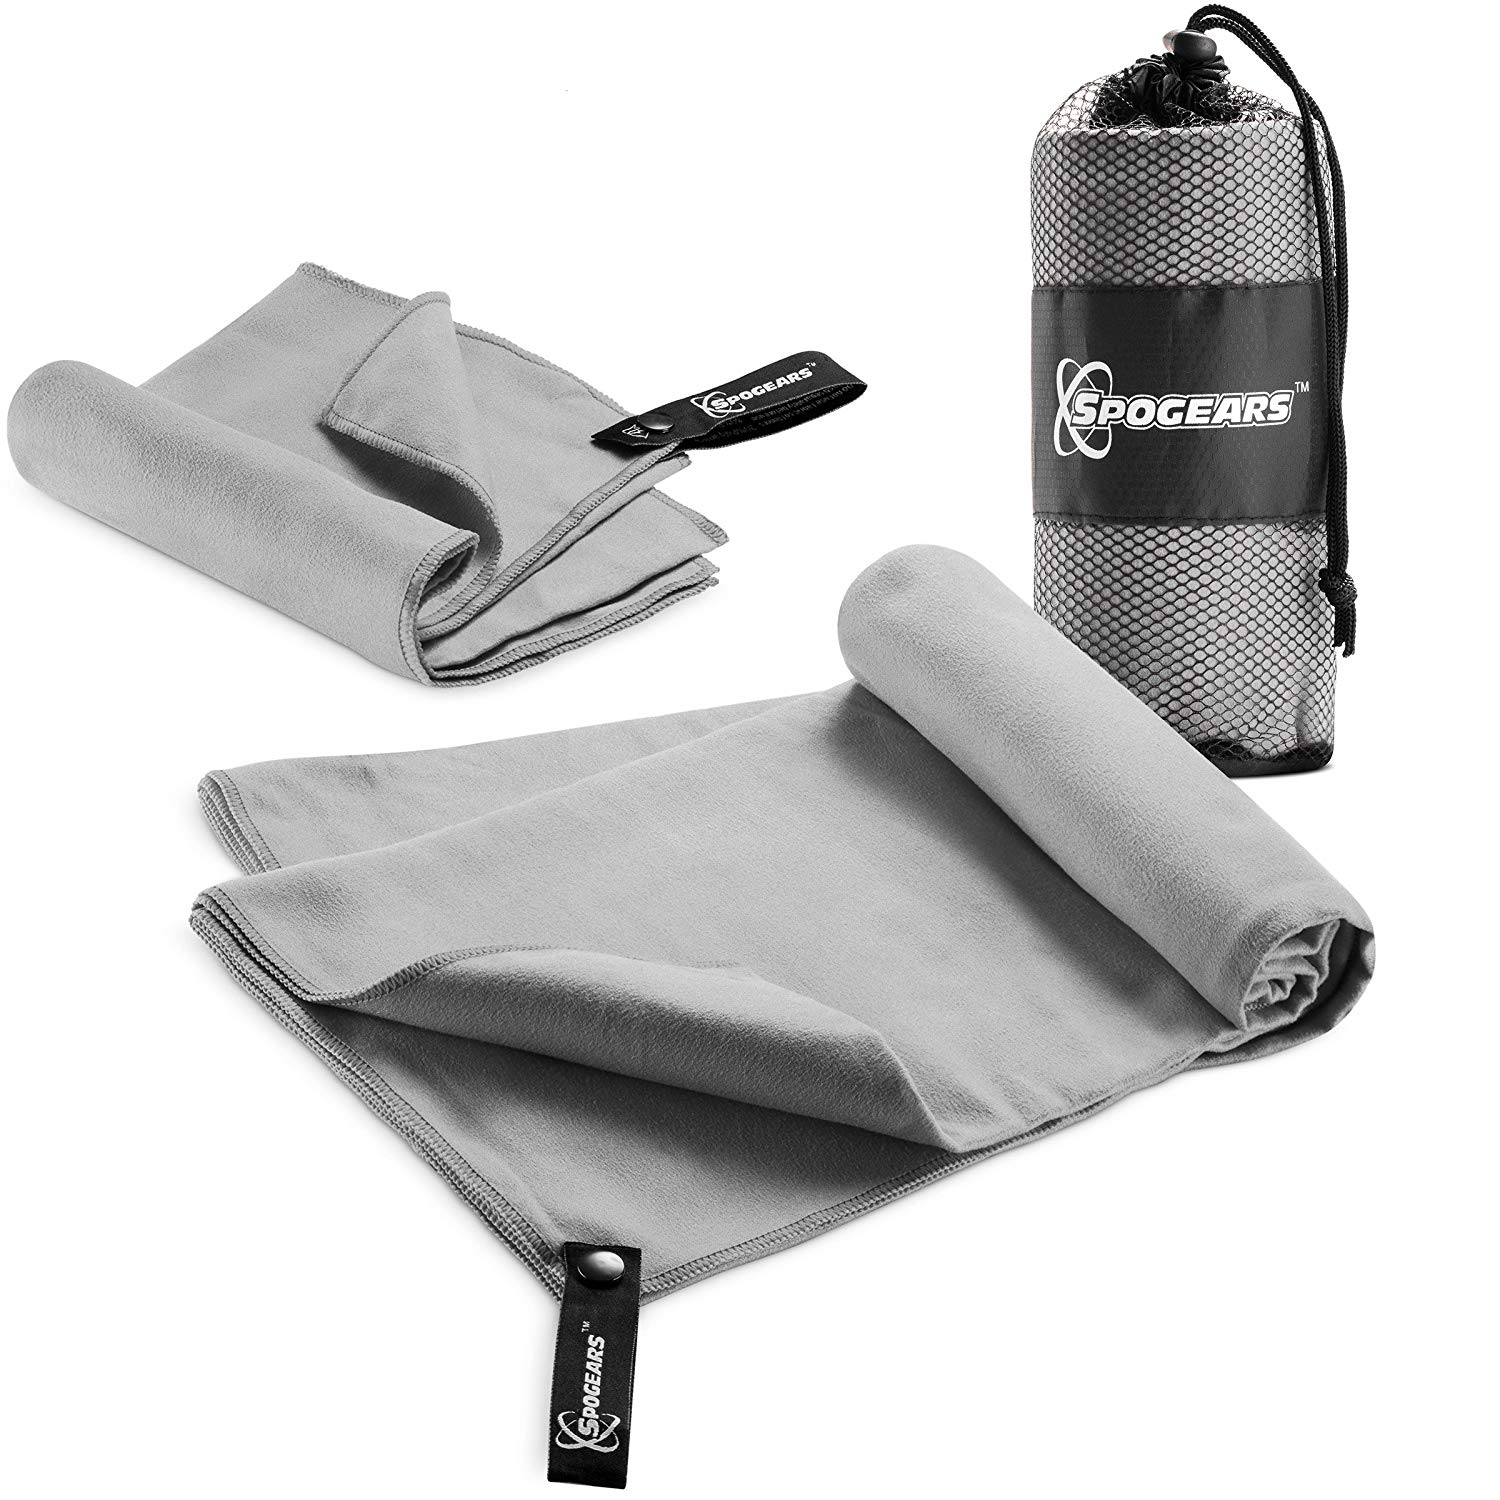 2 pack microfiber travel towel (grey)